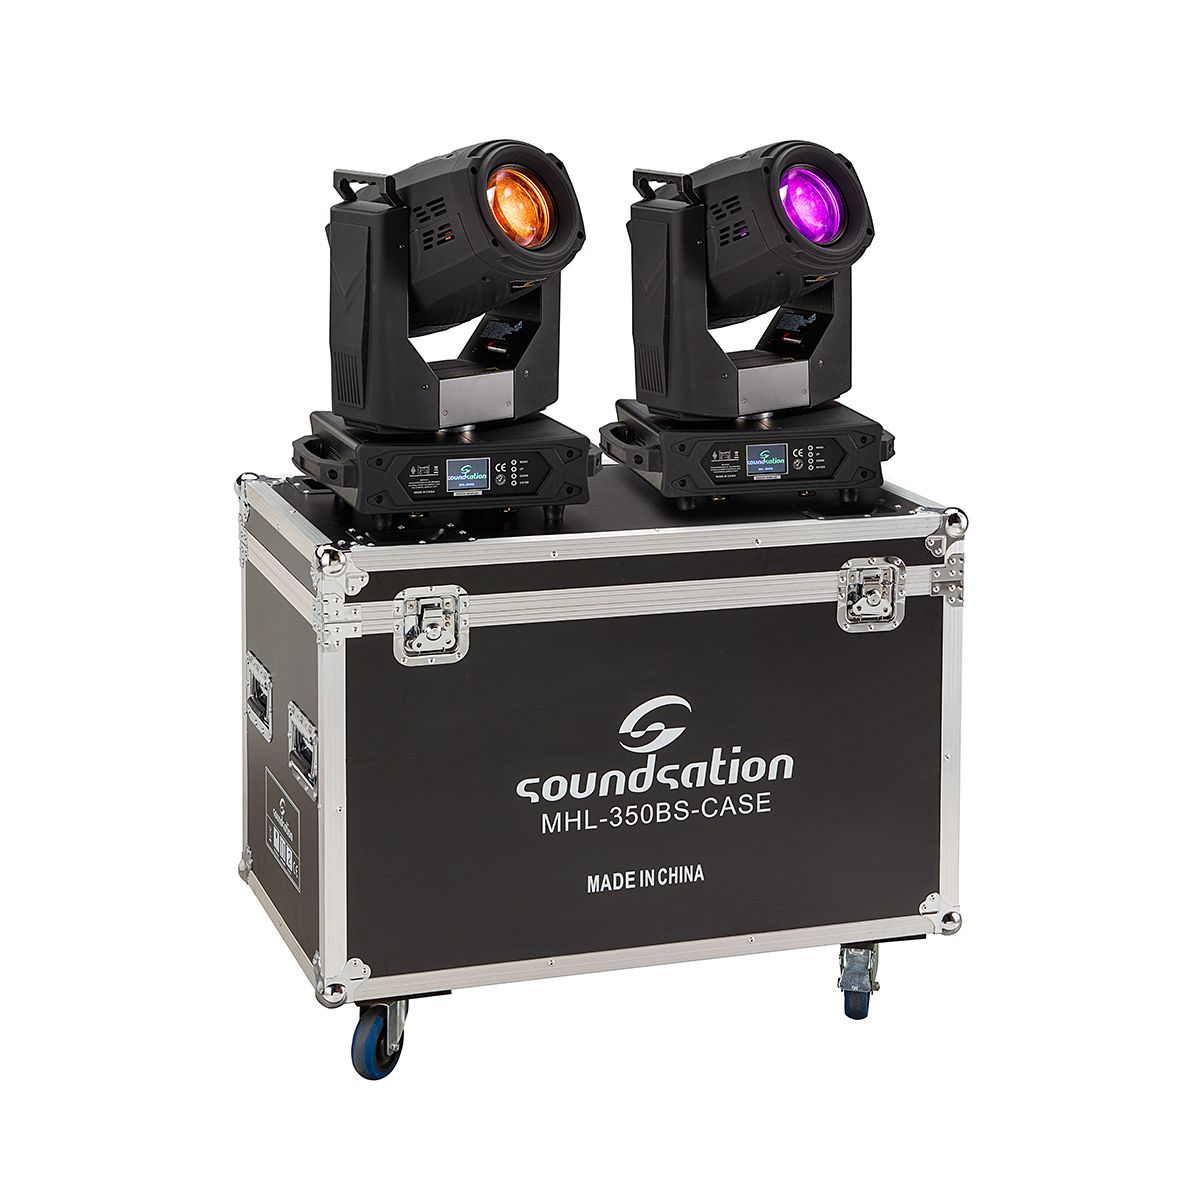 SOUNDSATION MHL-350BS SET - Set 2 Teste Mobili Beam 17R 350W